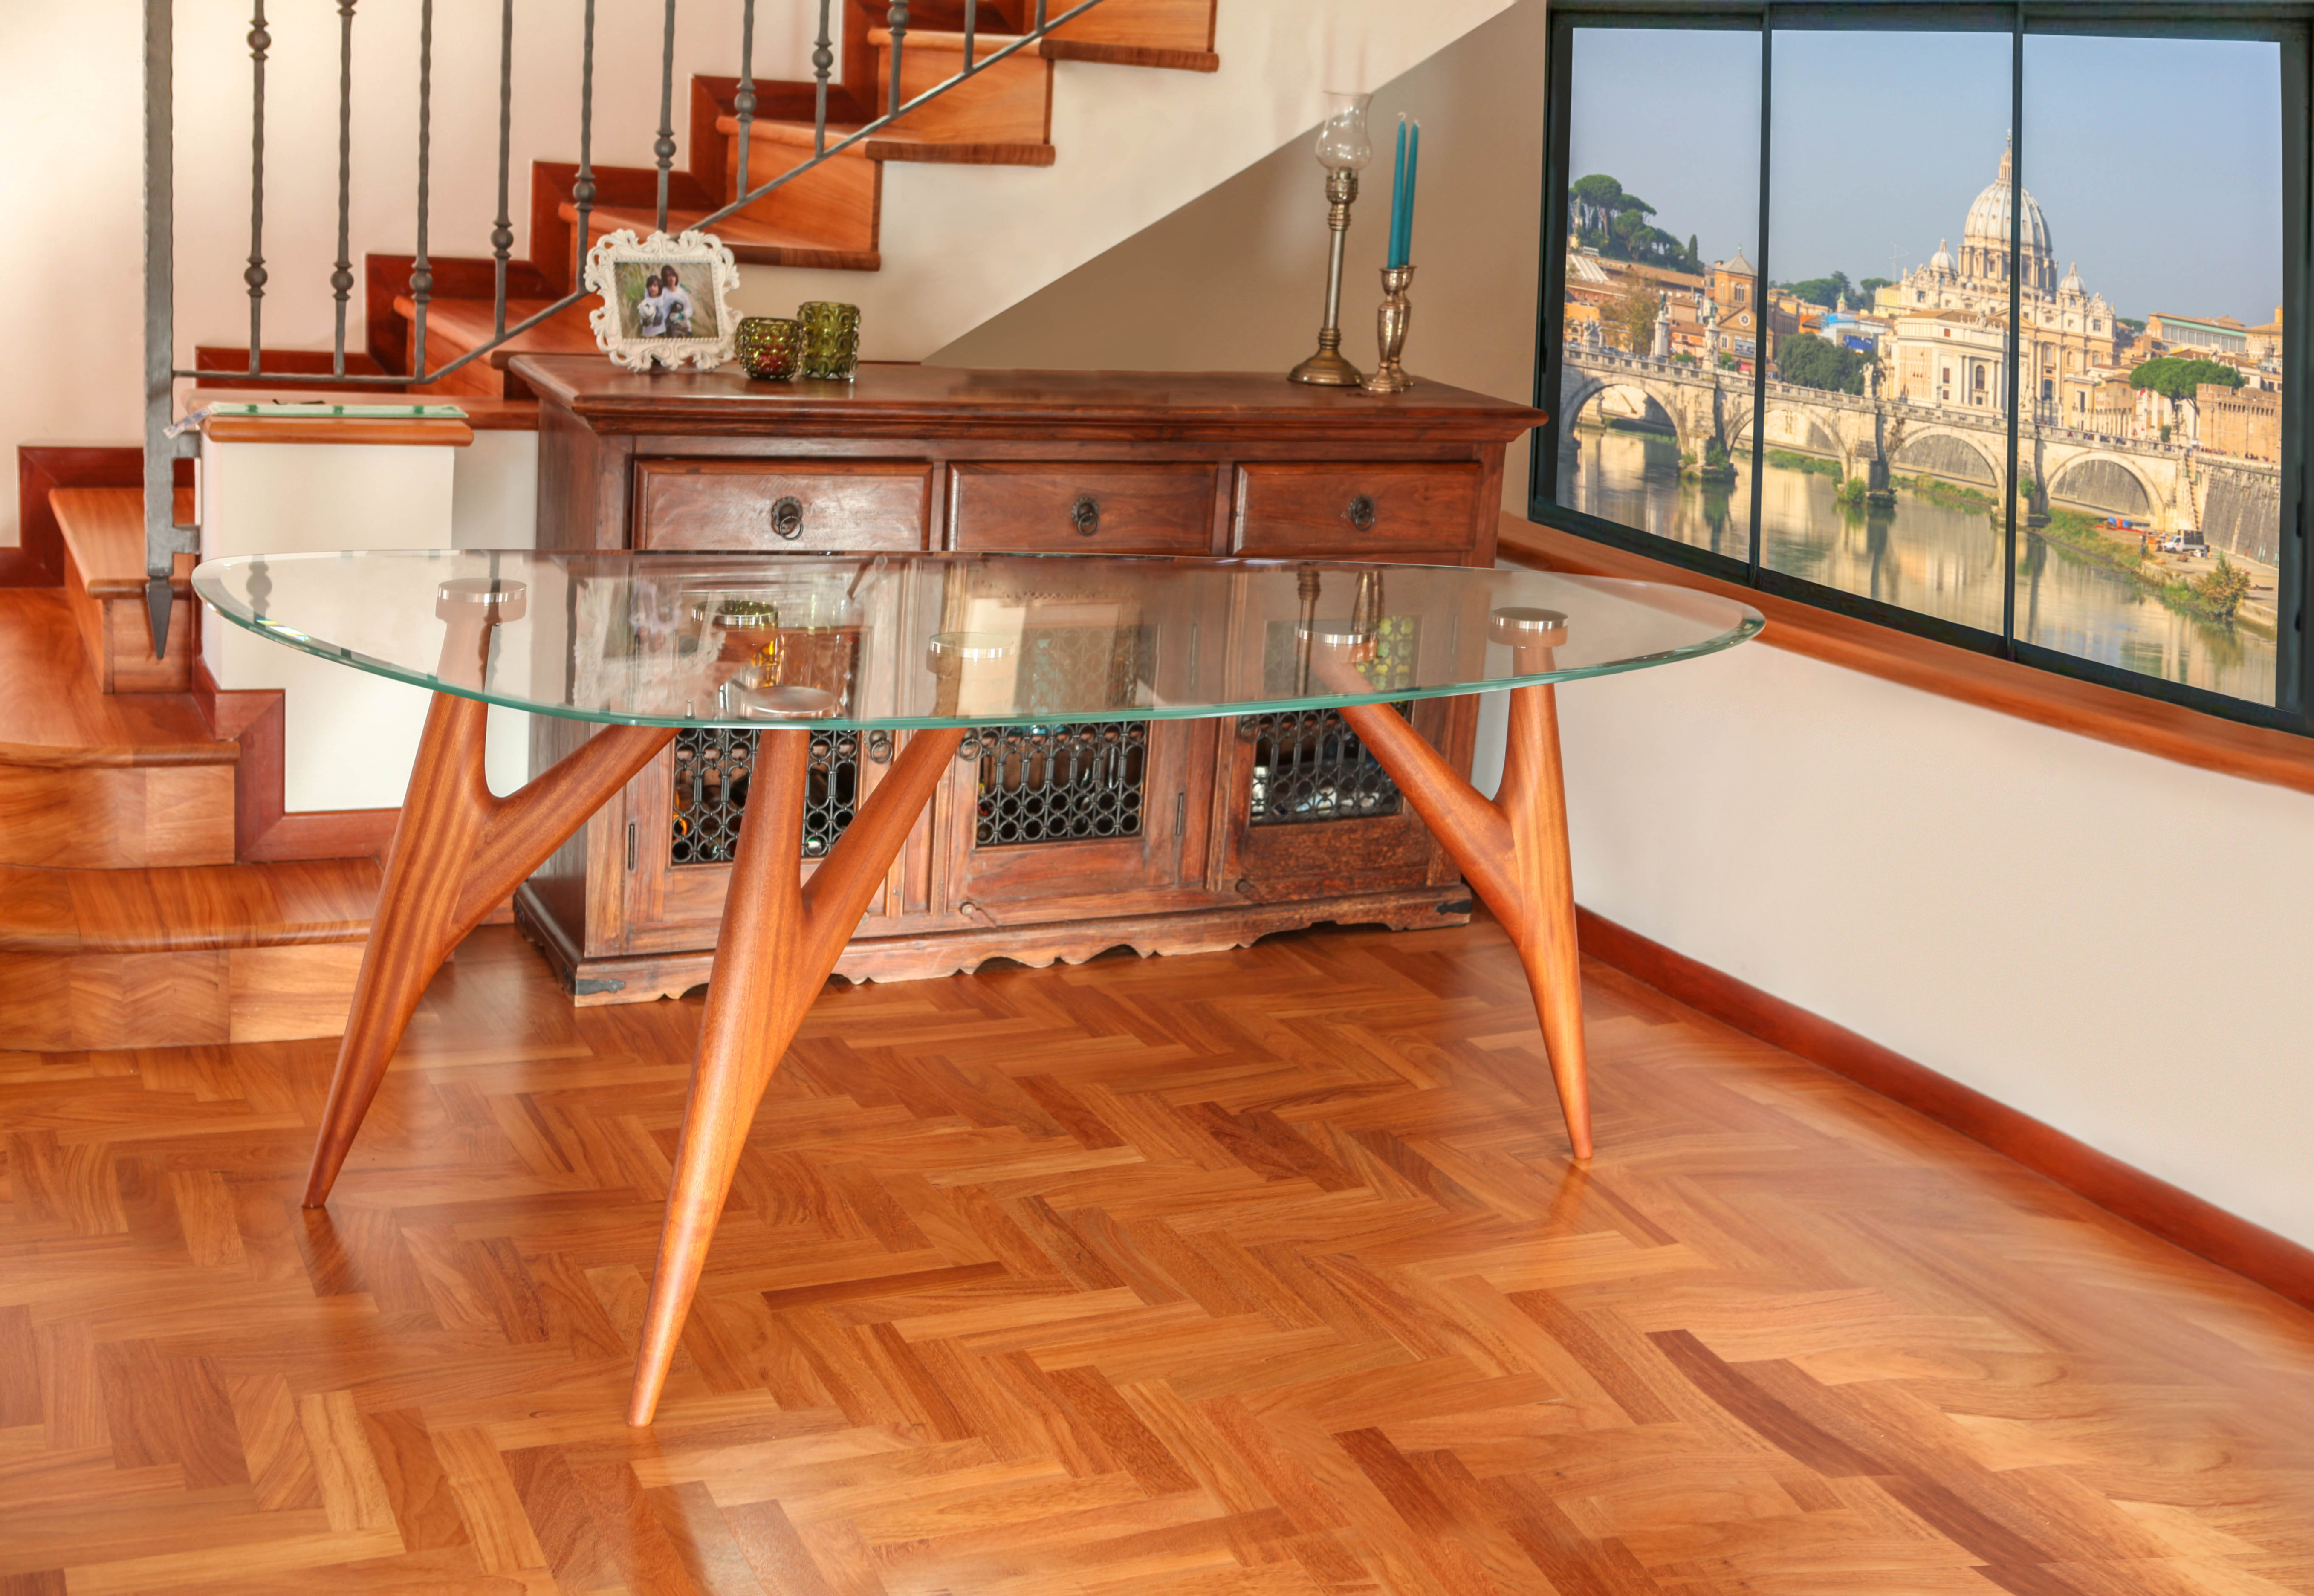 Ted 3-Legged Mahogany Dining Table. Handmade in Italy from solid mahogany wood with a clear tempered glass tabletop, this piece adds an organic, textured feel to your dining space. Able to accommodate up to eight people, this dining table allows you to entertaining guests in style. crystals precious coffeetable madeinitaly highquality from greyge